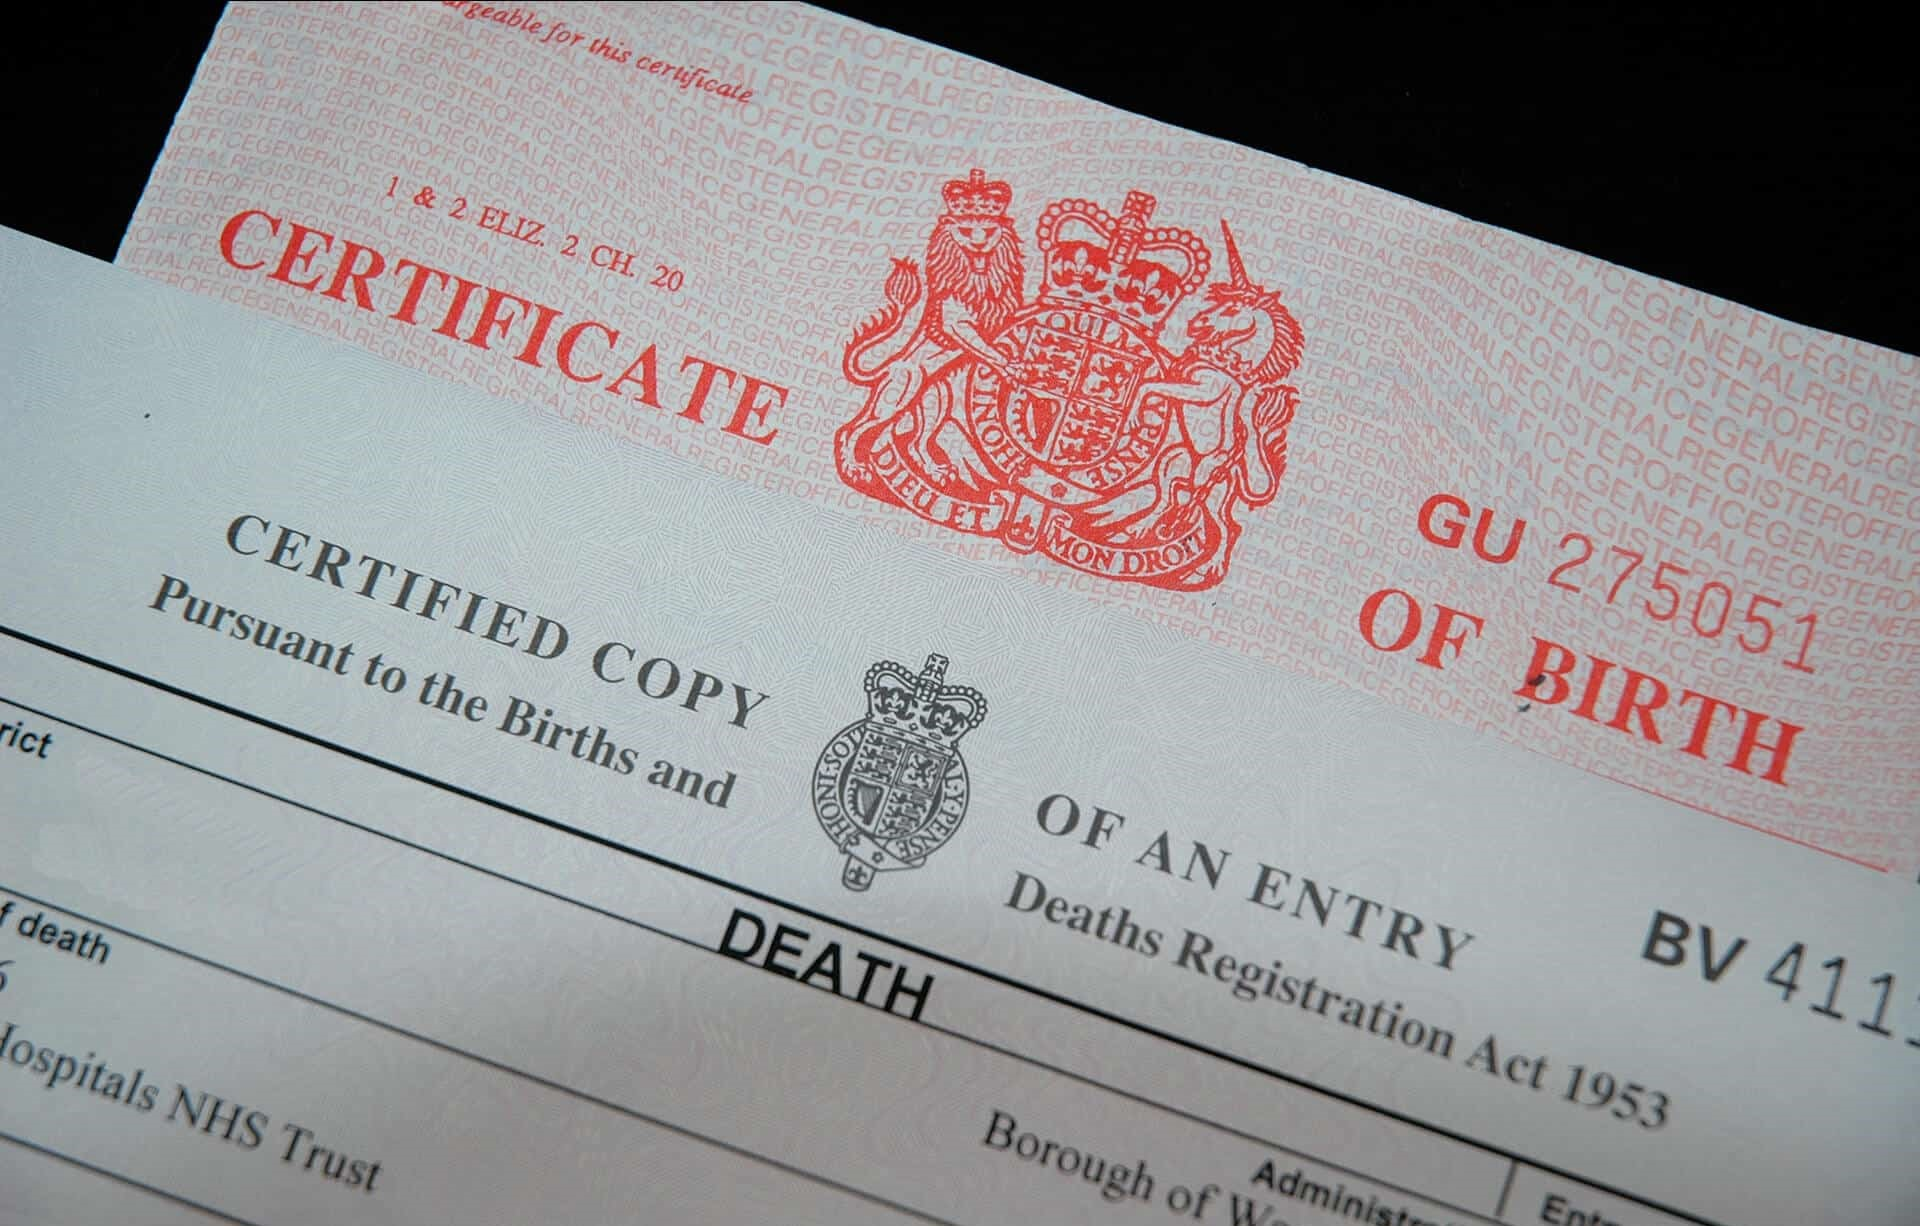 Death Certificate of a missing Person